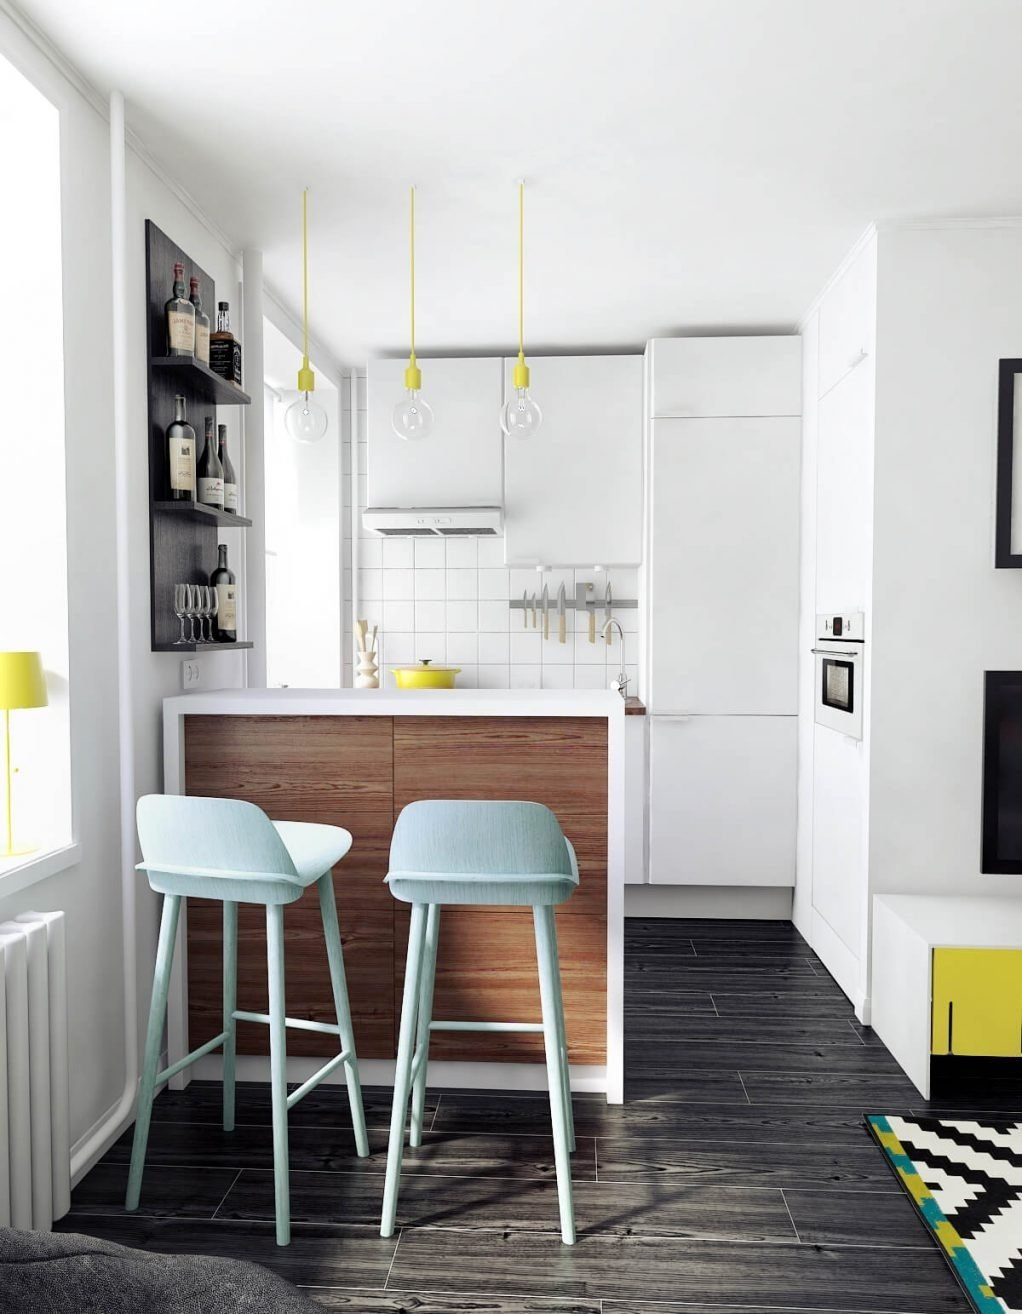 10 Nice Space Saving Ideas For Small Kitchens simple and clever space saving ideas for small kitchens kukun 2020